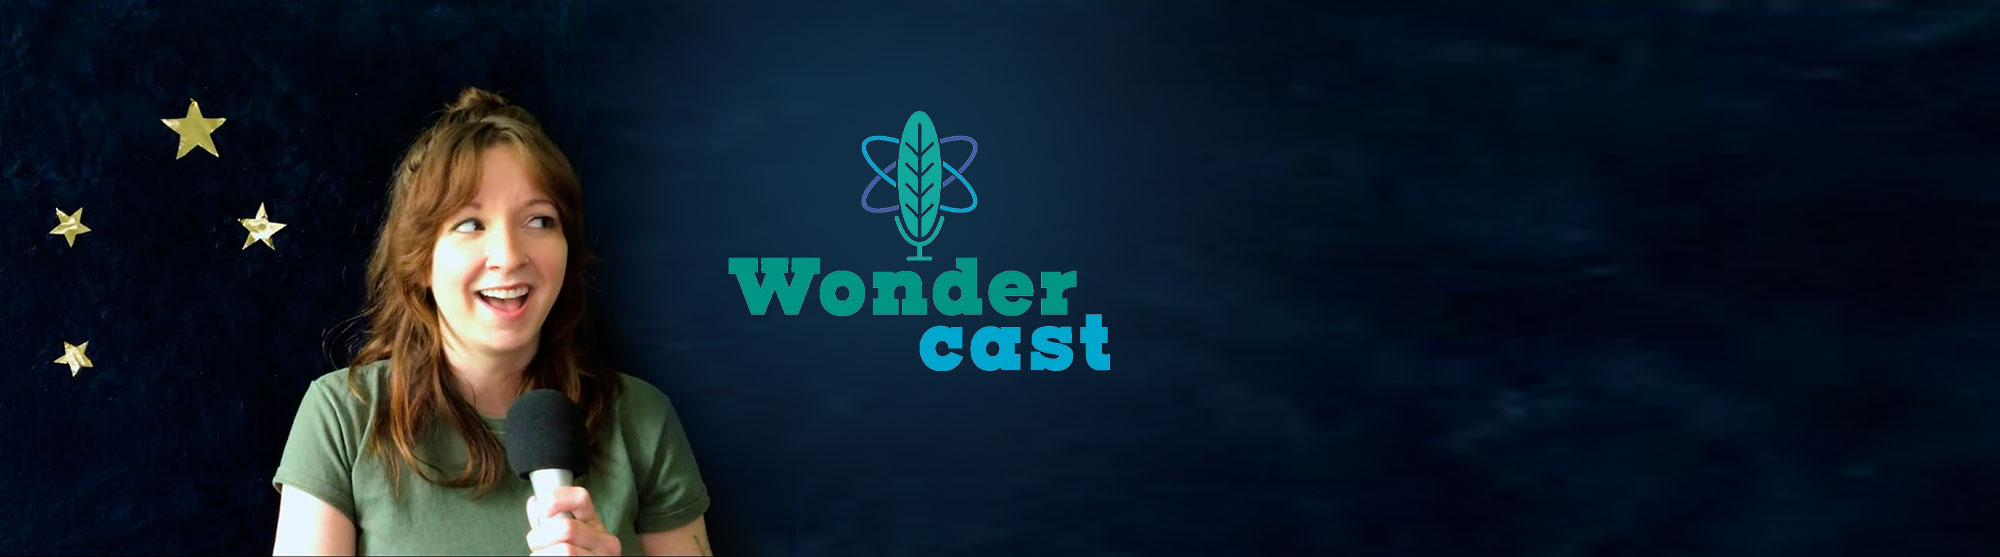 Kellie Vinal and the Wondercast logo